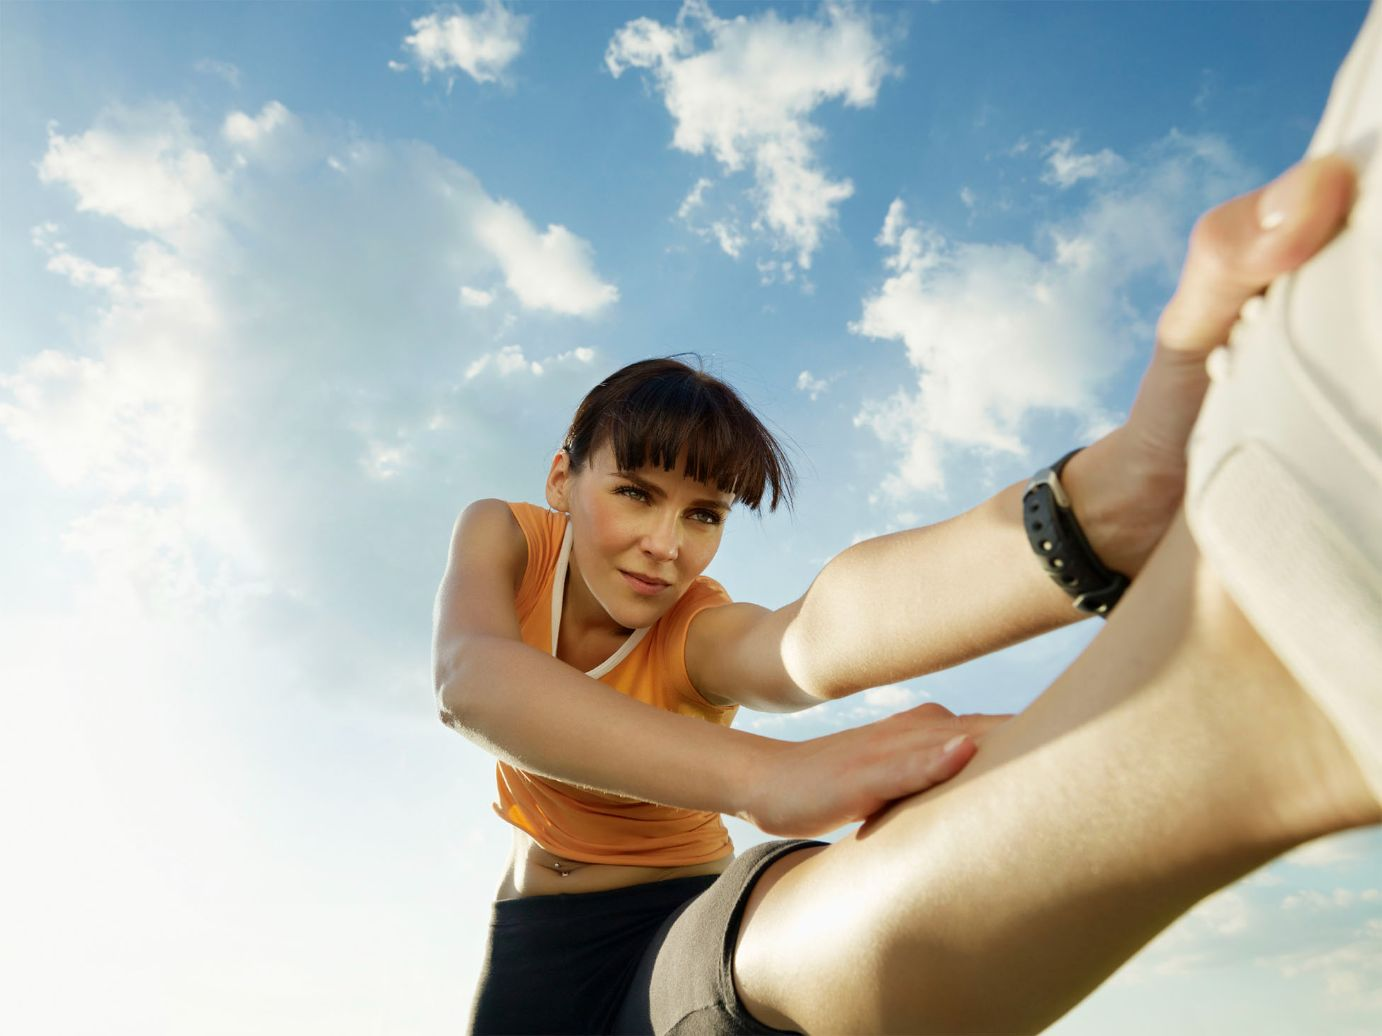 woman stretching her leg before going out for a run